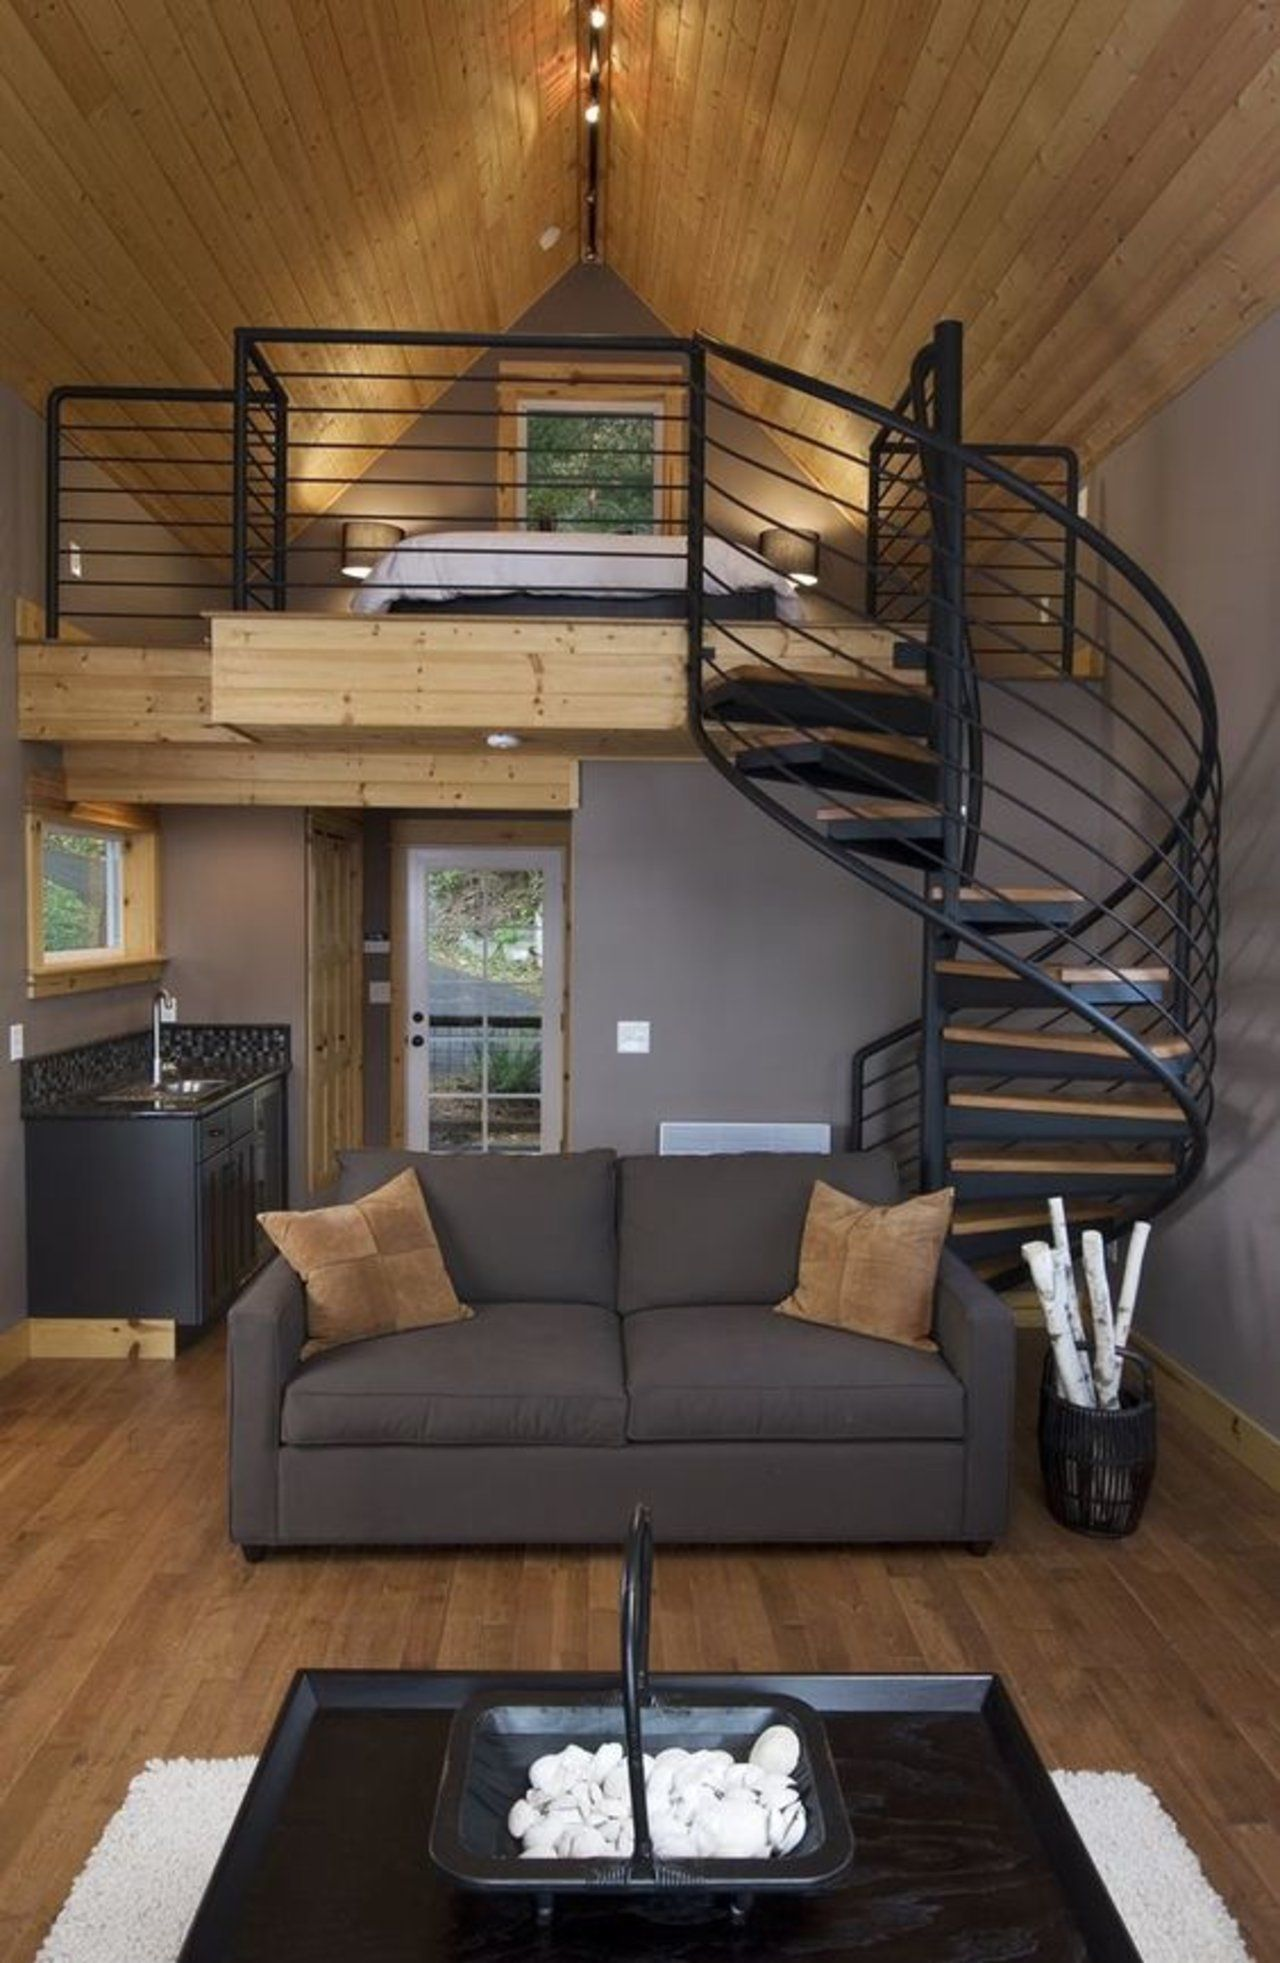 6 Tiny Houses We Could Actually Live In Spiral staircases Tiny